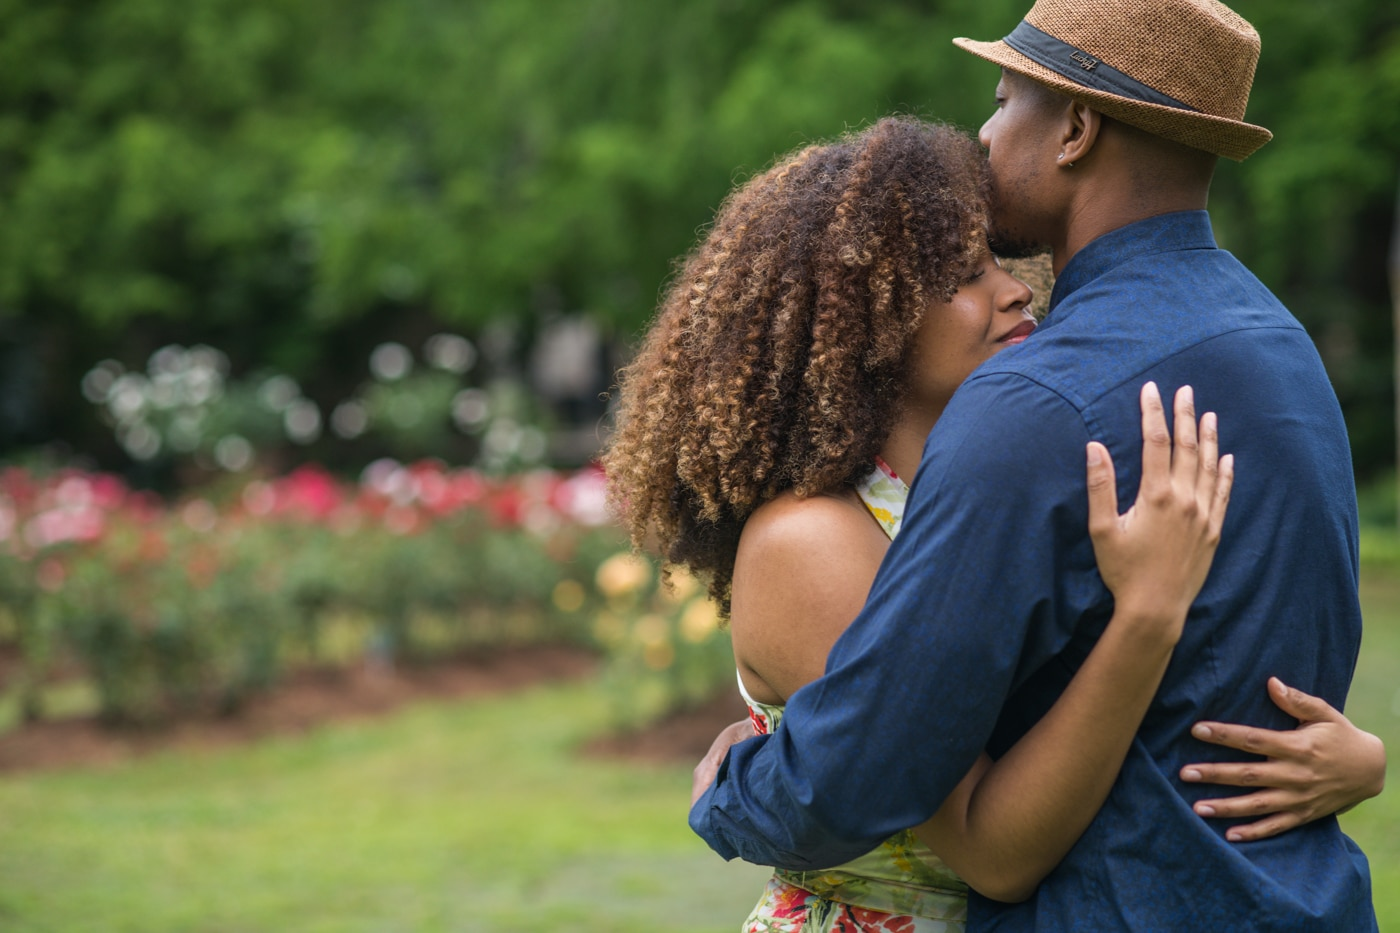 man kisses woman's forehead during Raleigh Rose Garden portrait session